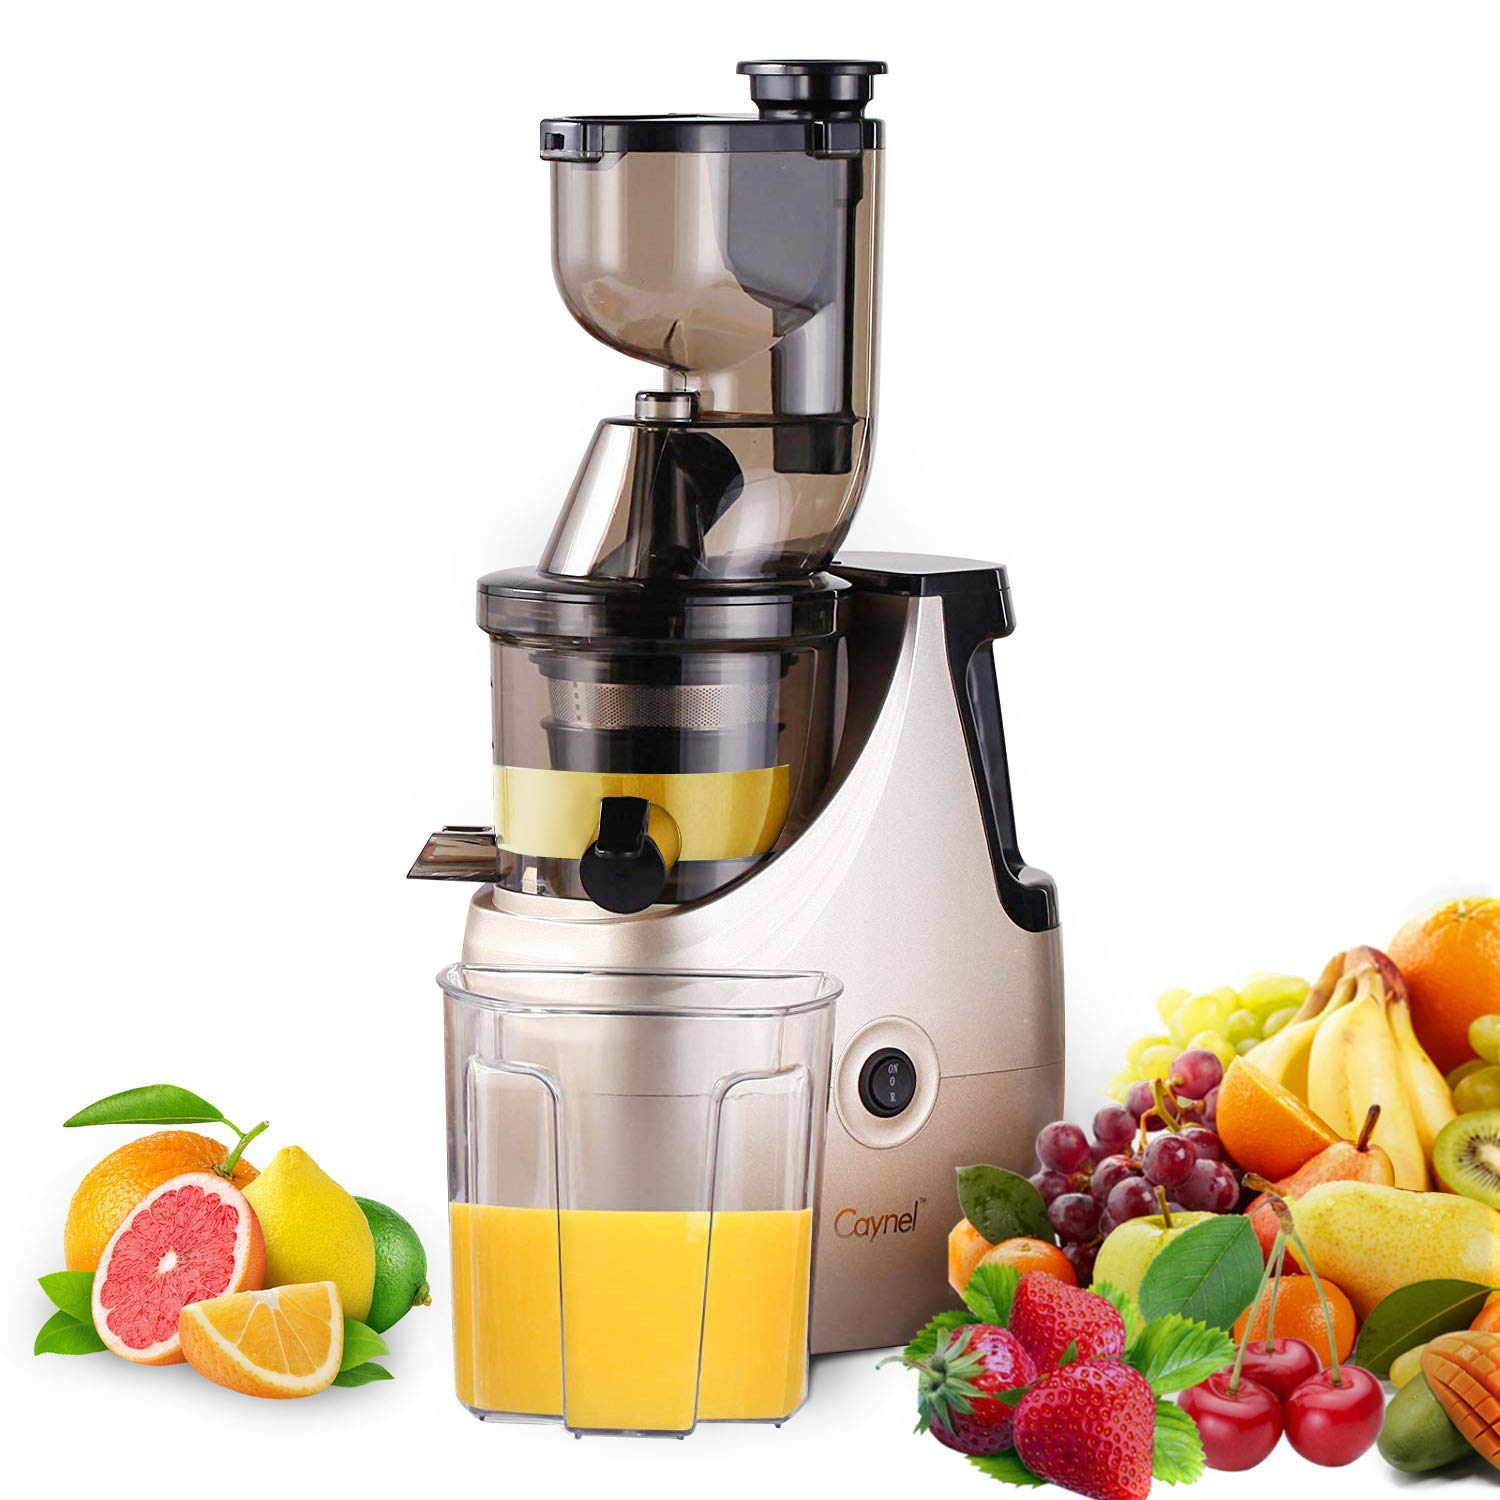 Slow Masticating Juicer Caynel Cold Press Extractor with 3'' Wide Chute for Fruits, Vegetables and Herbs, Quiet Durable Motor with Reverse Function, Smoothie Strainer Included, High Yield Vertical Juicer Easy Cleaning , BPA Free(Champagne)